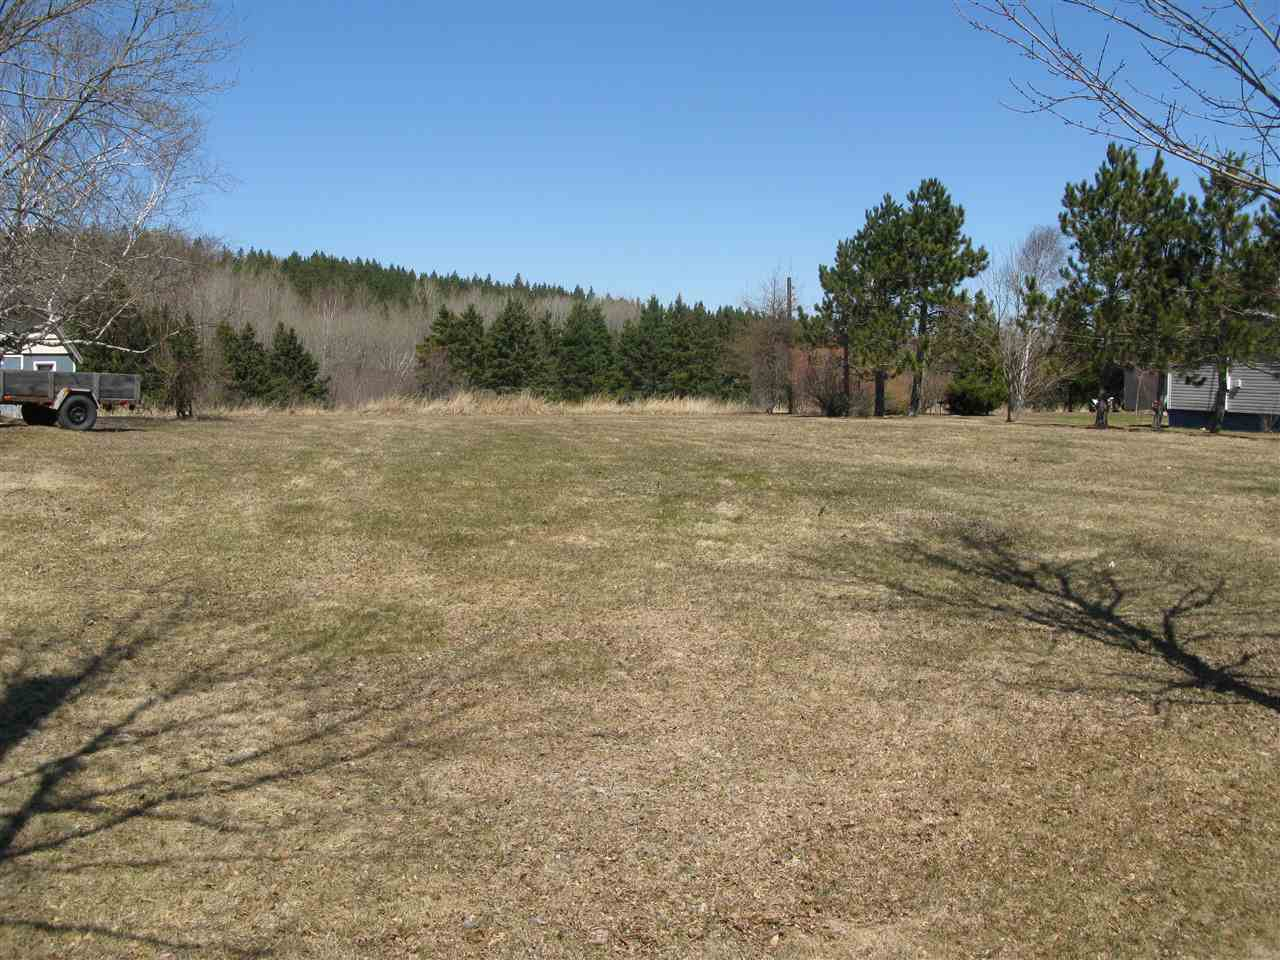 Main Photo: Green Hill Road in Green Hill: 108-Rural Pictou County Vacant Land for sale (Northern Region)  : MLS®# 202024106